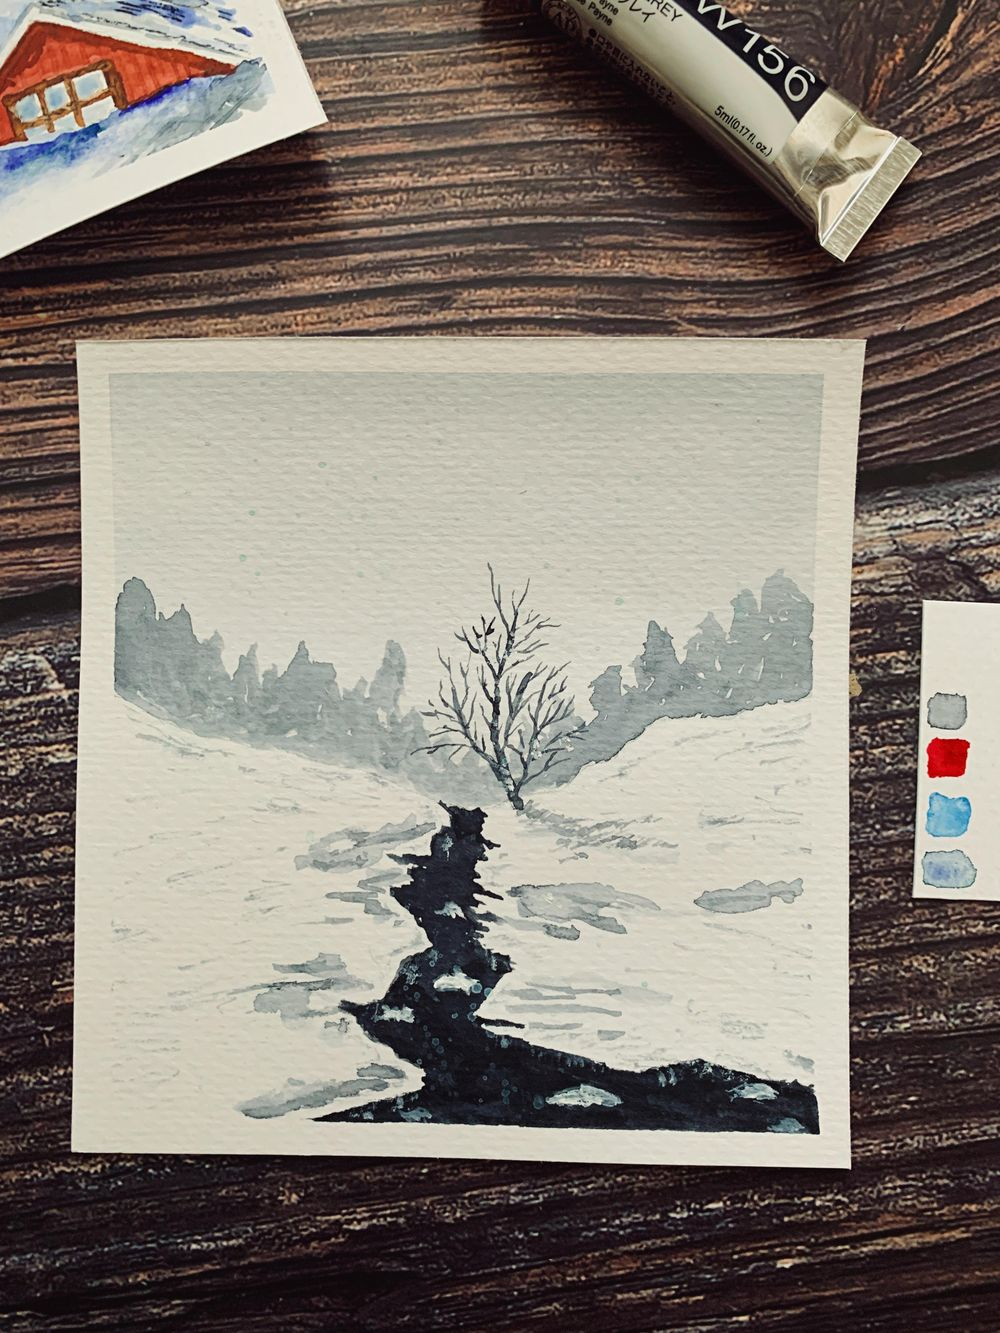 Fun Snowy Watercolor Paintings - image 2 - student project